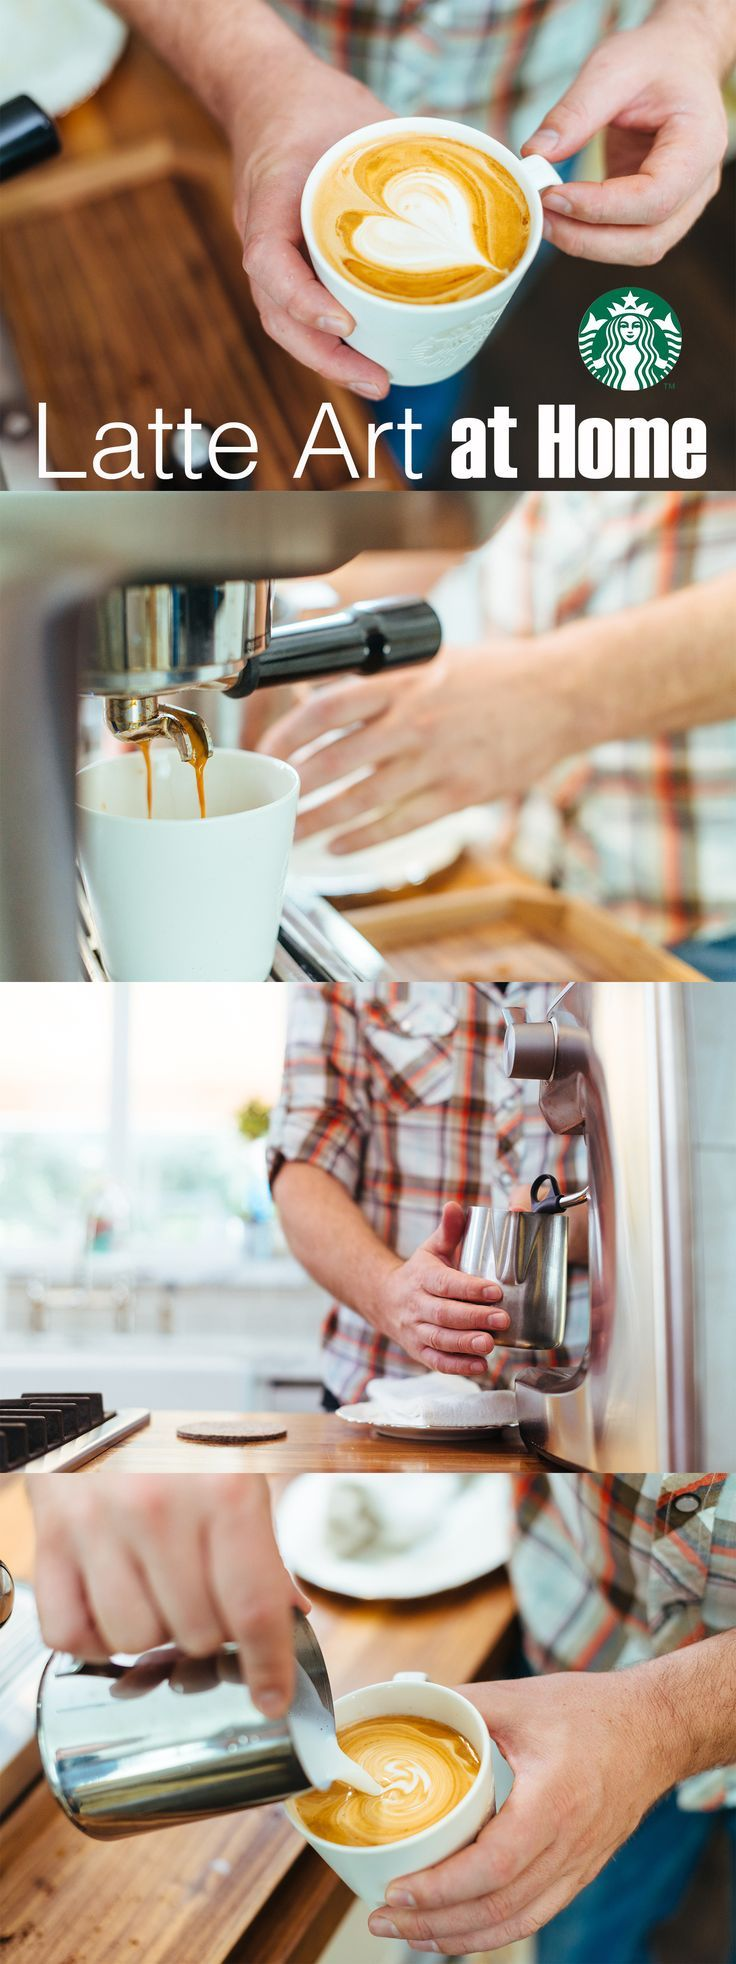 Learn how to make latte art at home with our step-by-step video guide. Here's what you'll need to get started: espresso maker with a steam wand, metal steaming pitcher with a pointed spout, wide and shallow coffee cup, milk and finely ground coffee, like Starbucks®️️ Espresso Roast.